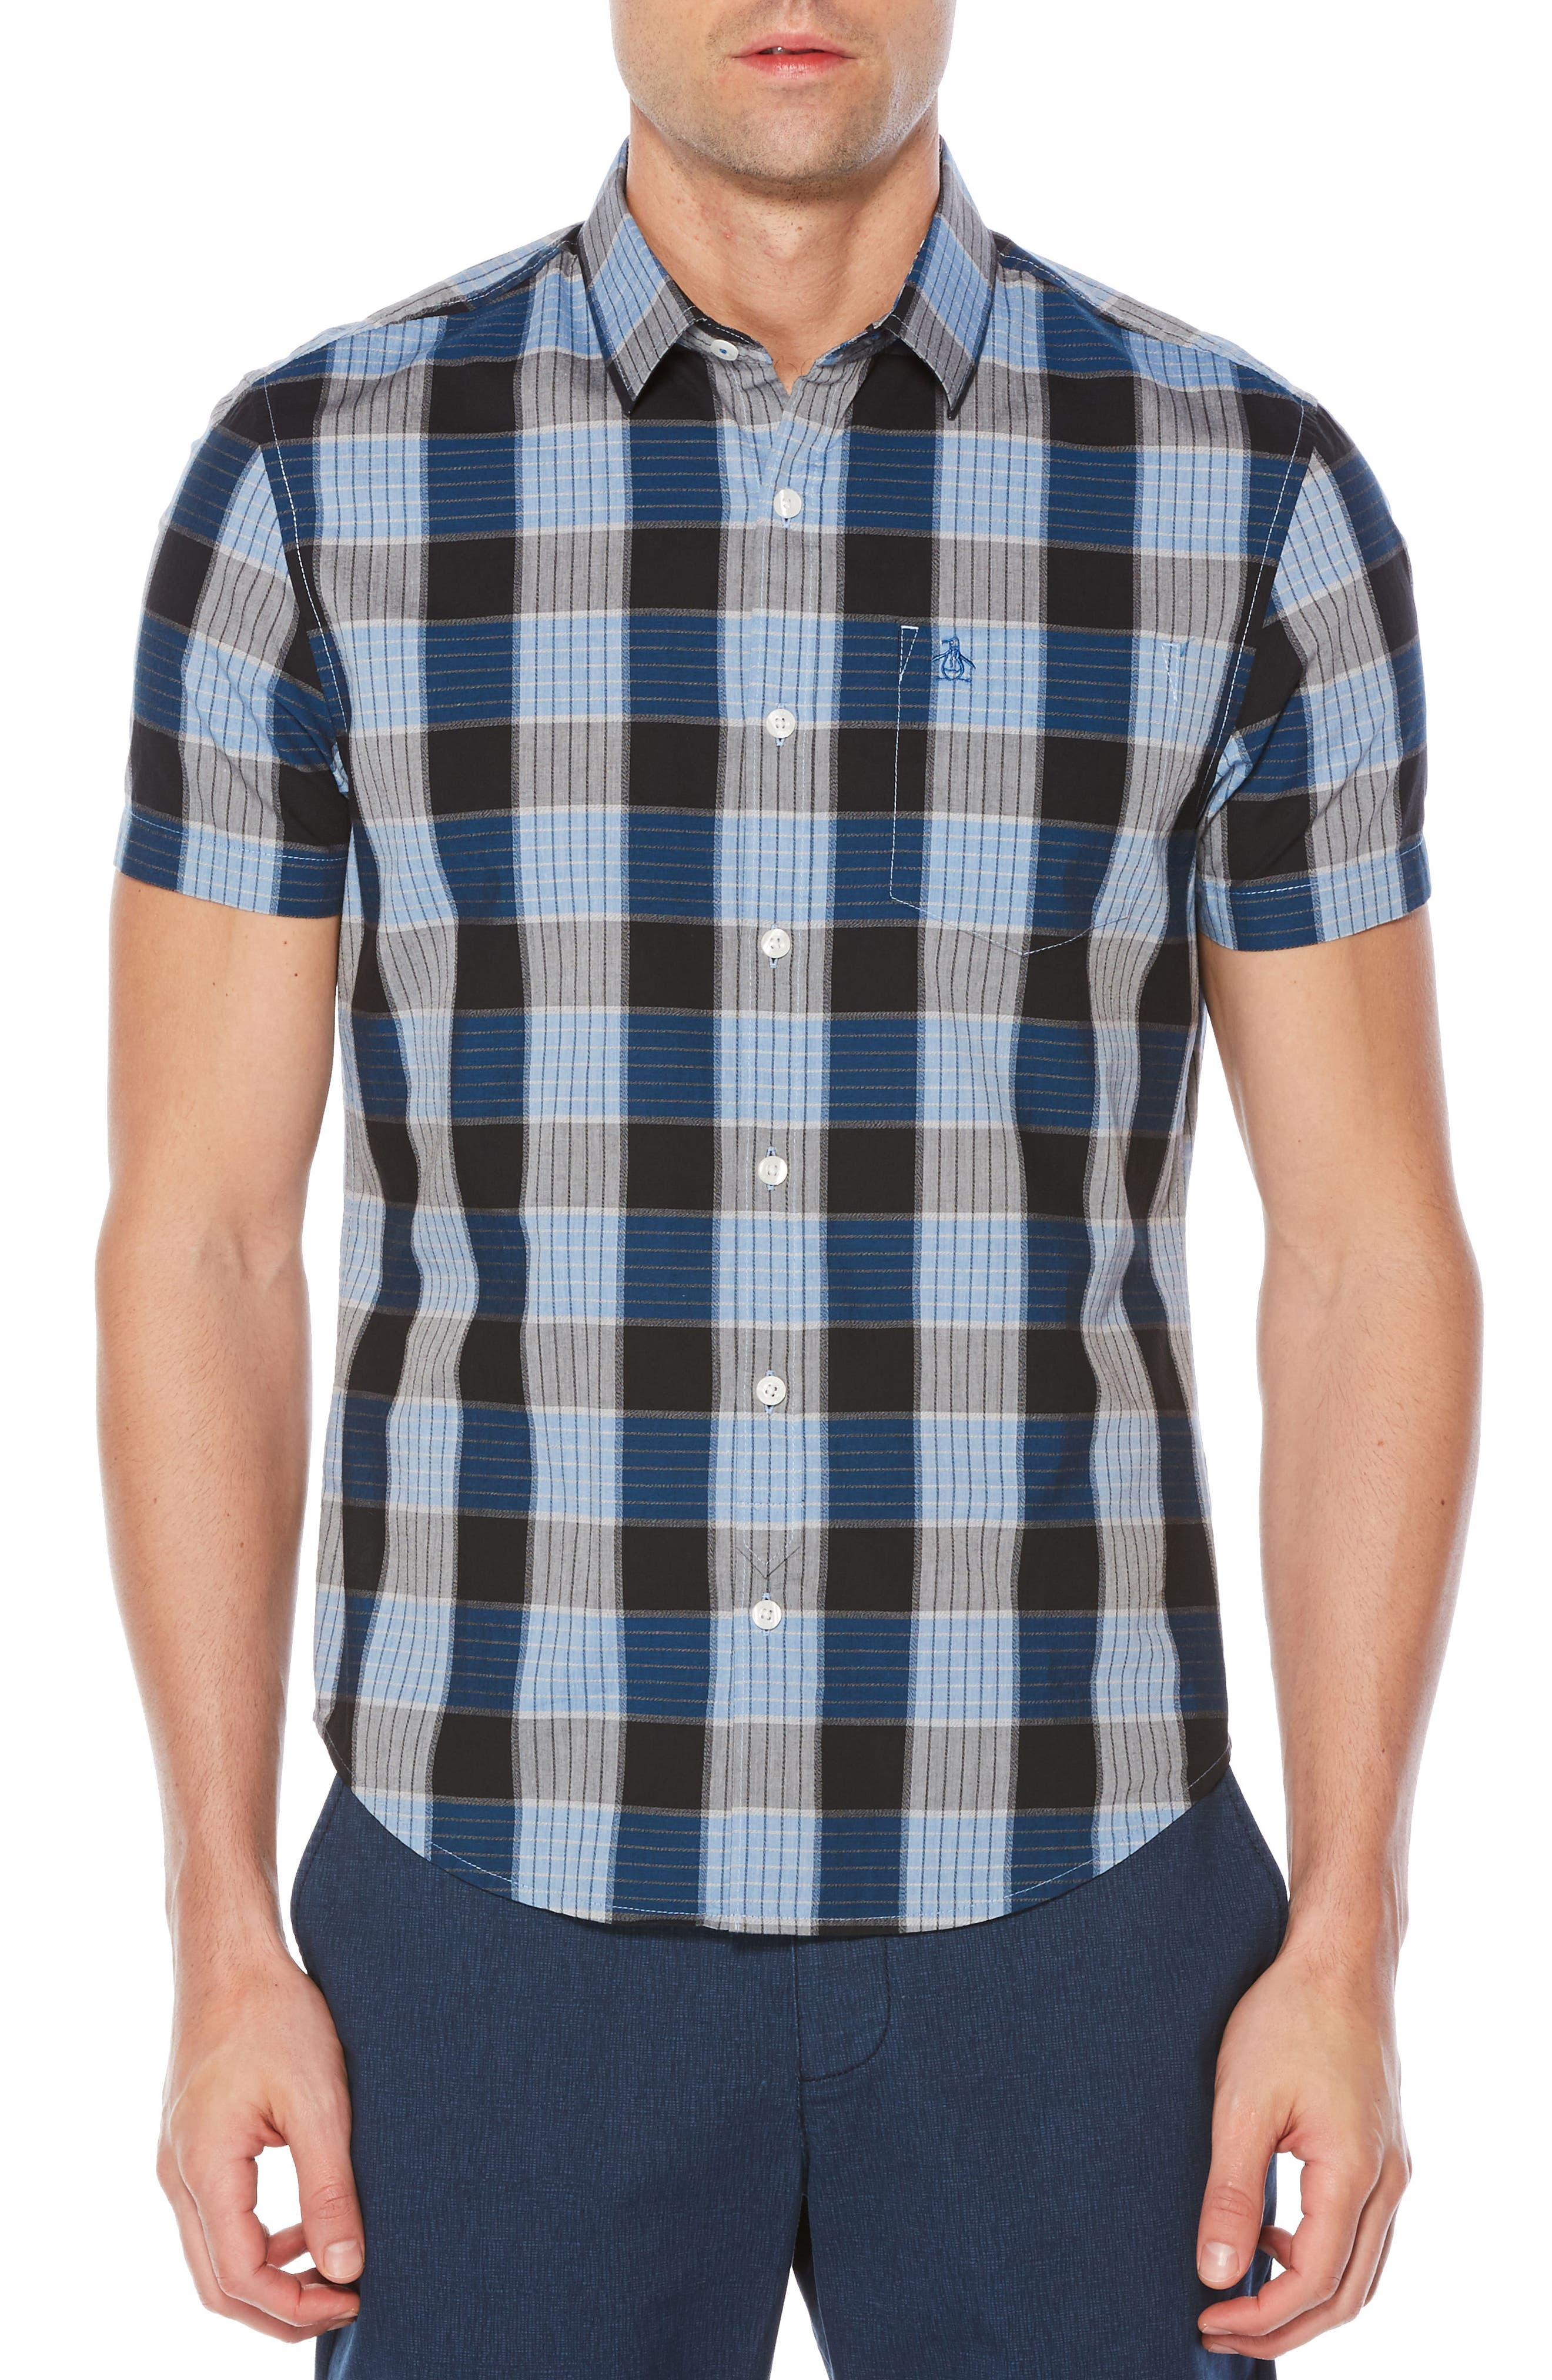 Jaspé Plaid Slim Fit Shirt,                             Main thumbnail 1, color,                             403